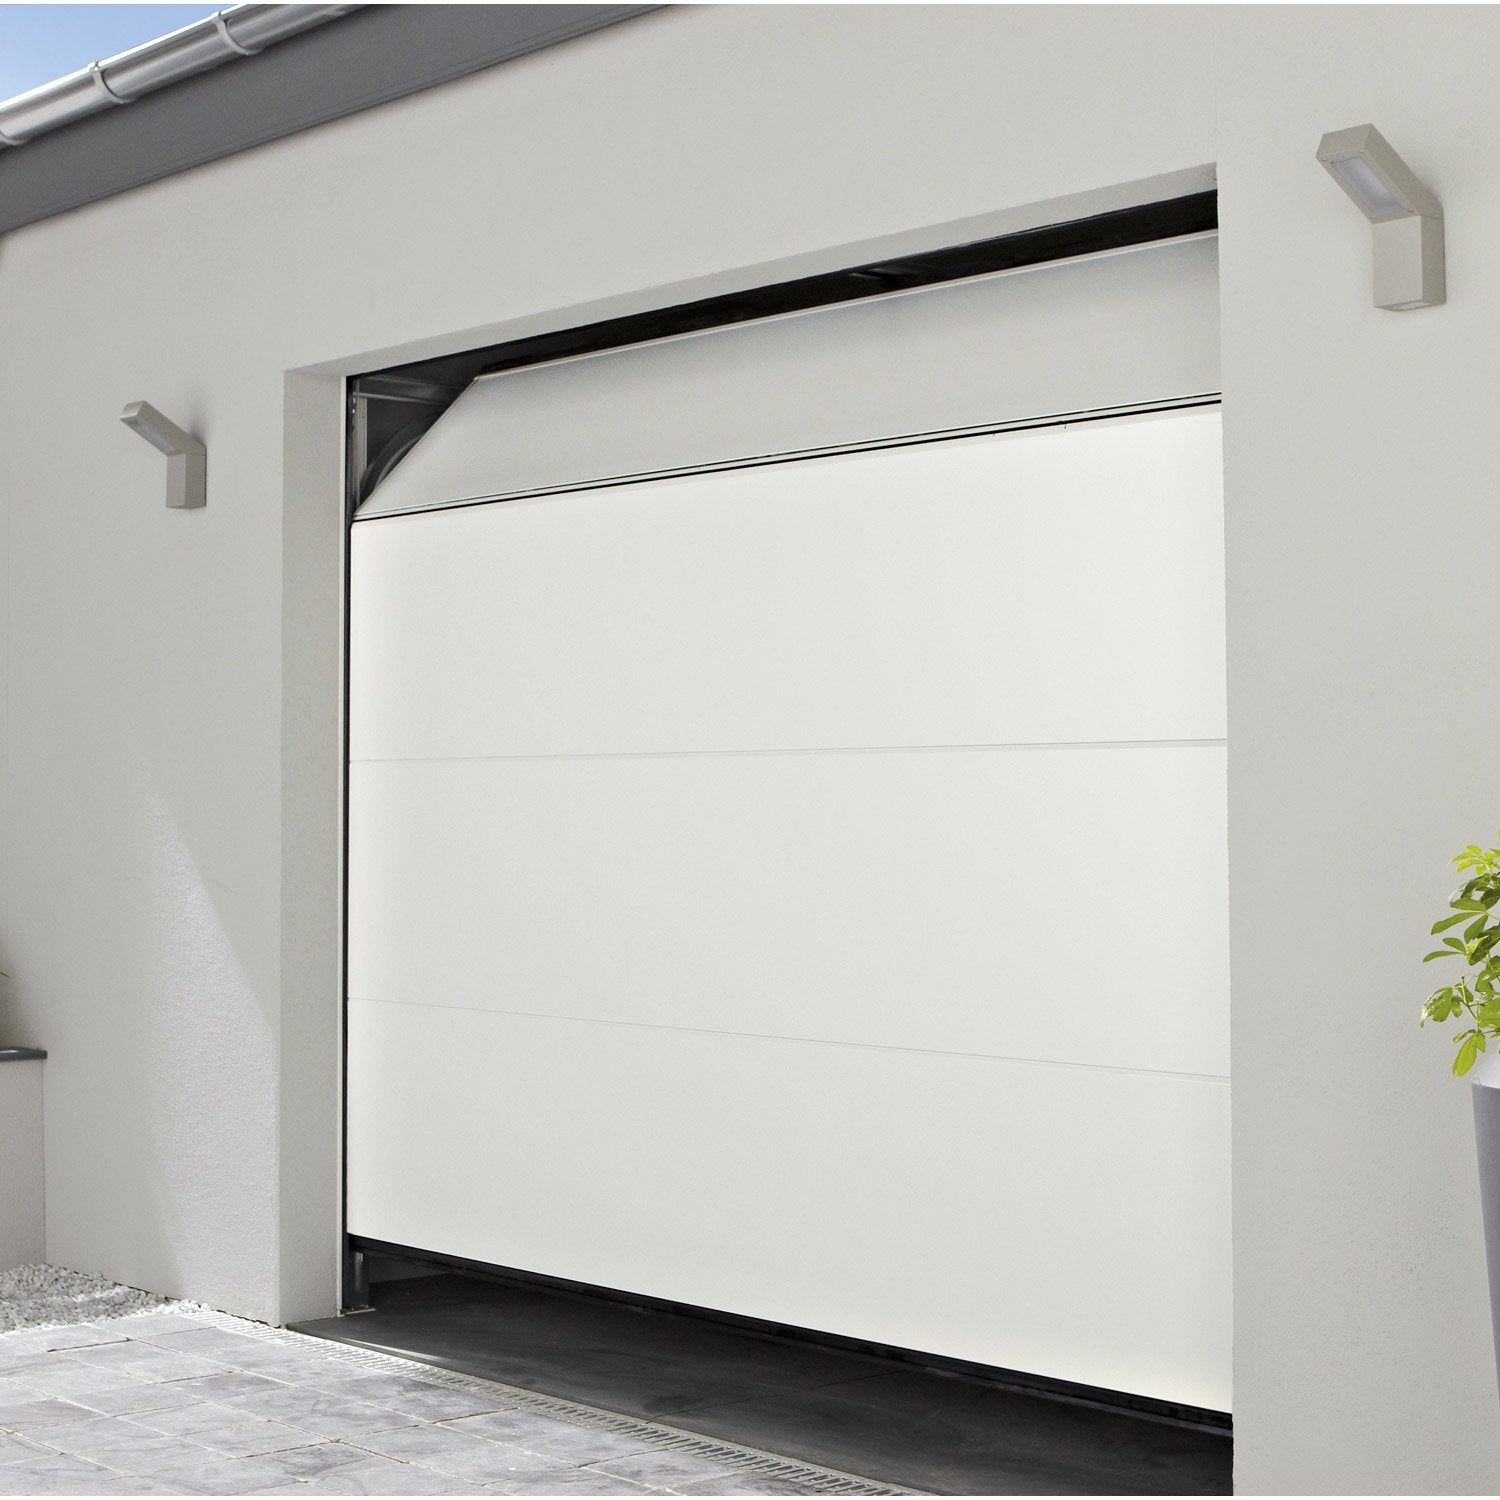 Porte de garage sectionelle motoris e chypre rainures - Porte de garage sectionnelle motorisee hormann ...